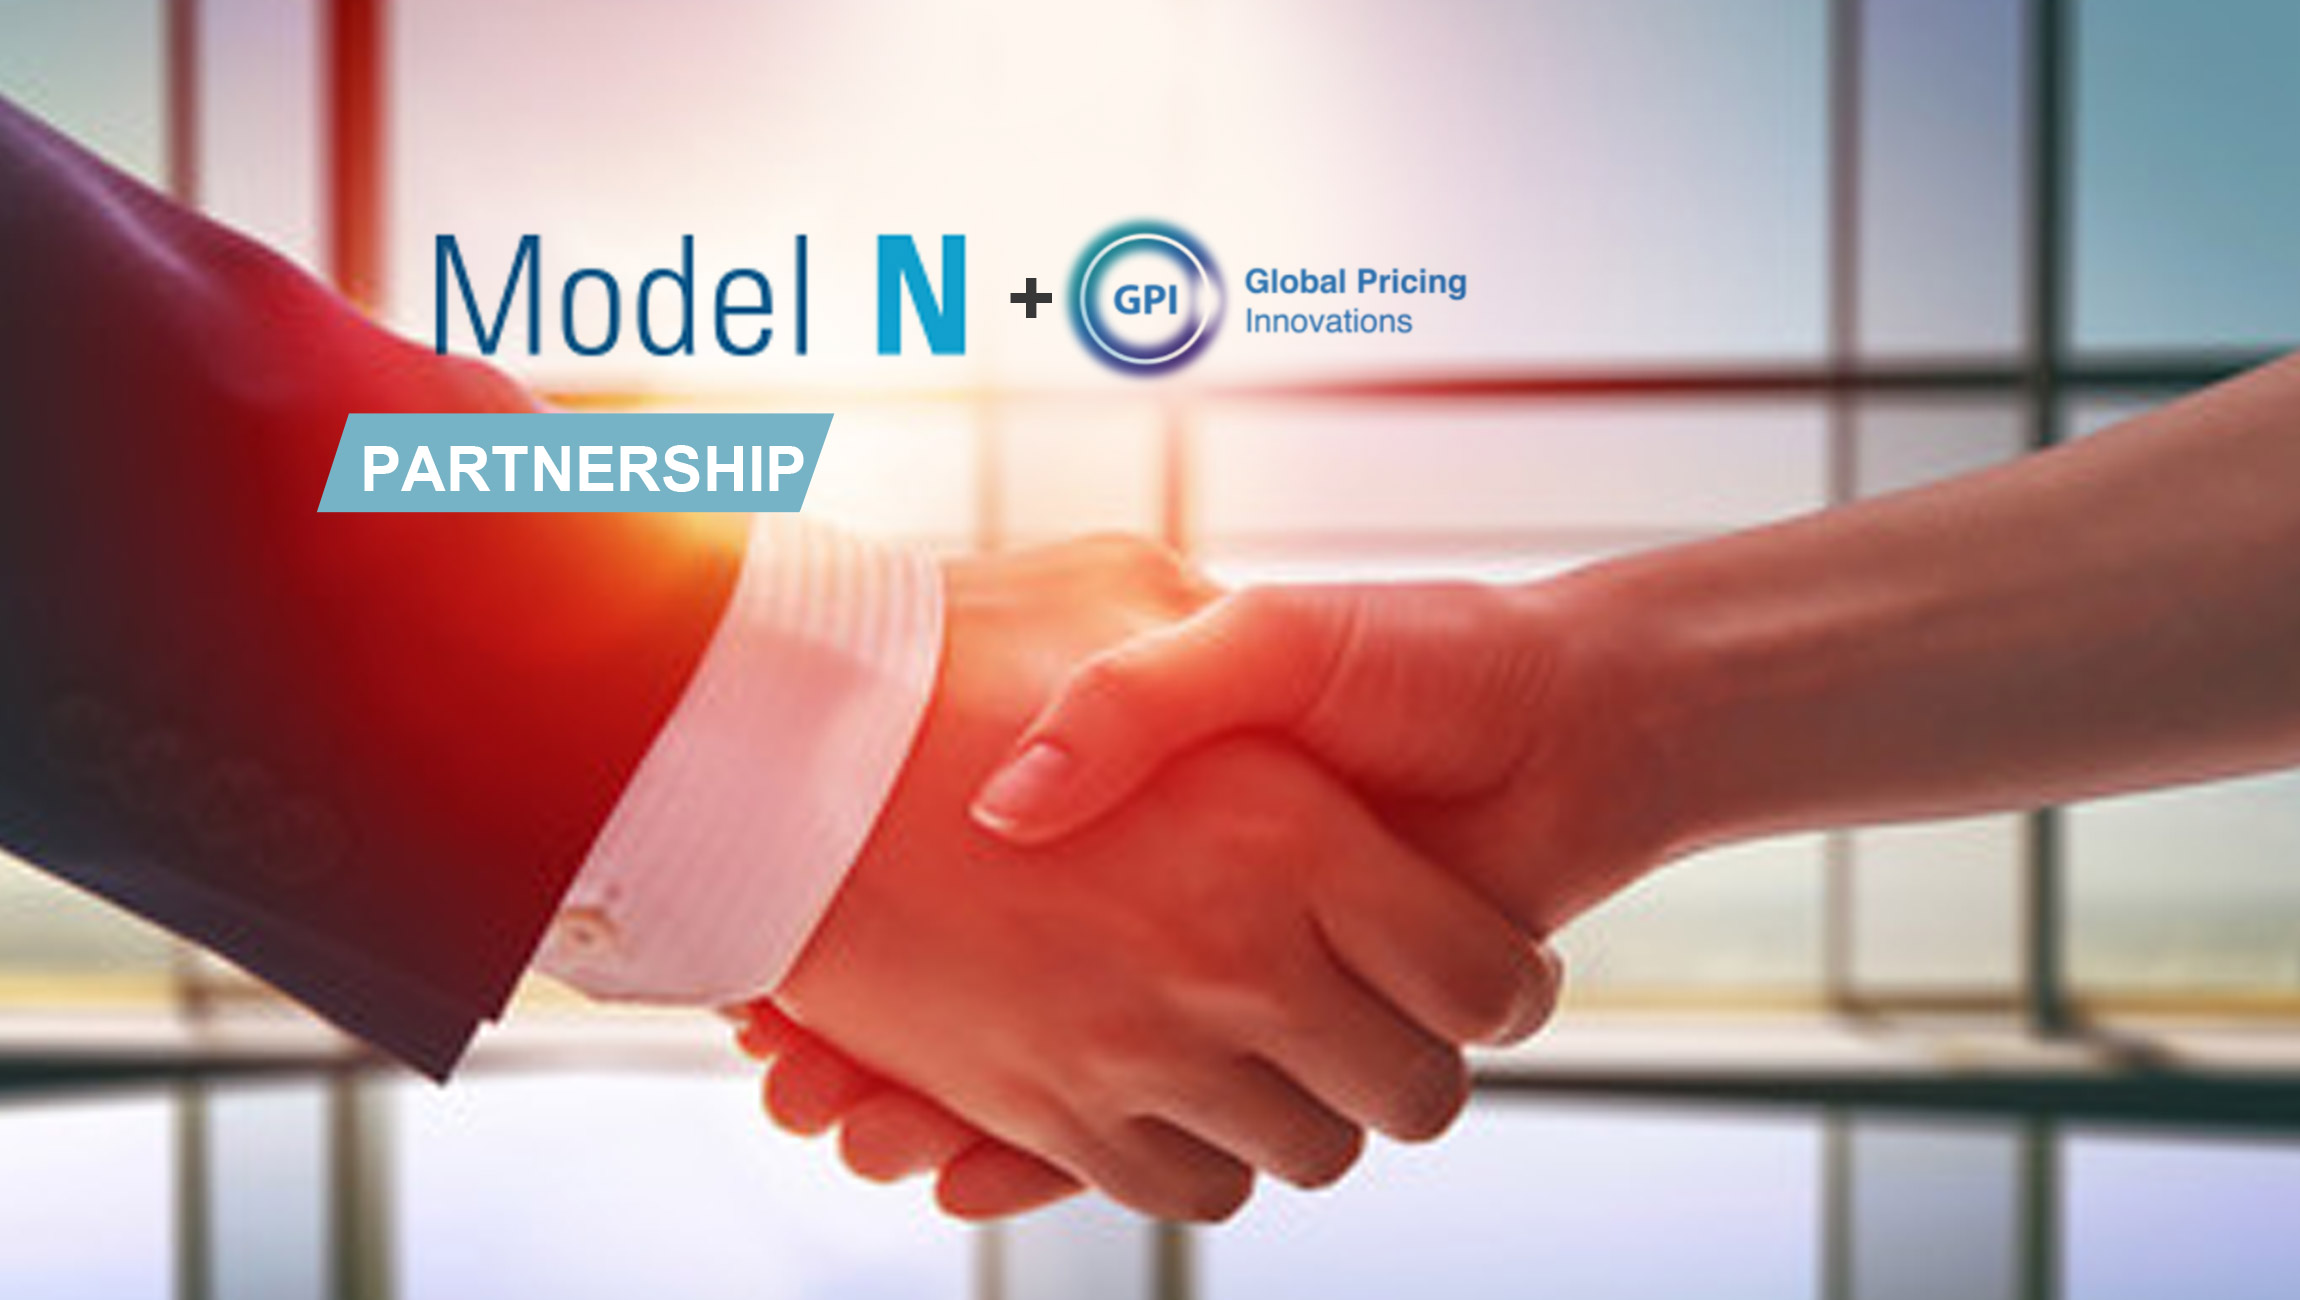 Model N and Global Pricing Innovations Announce Strategic Partnership